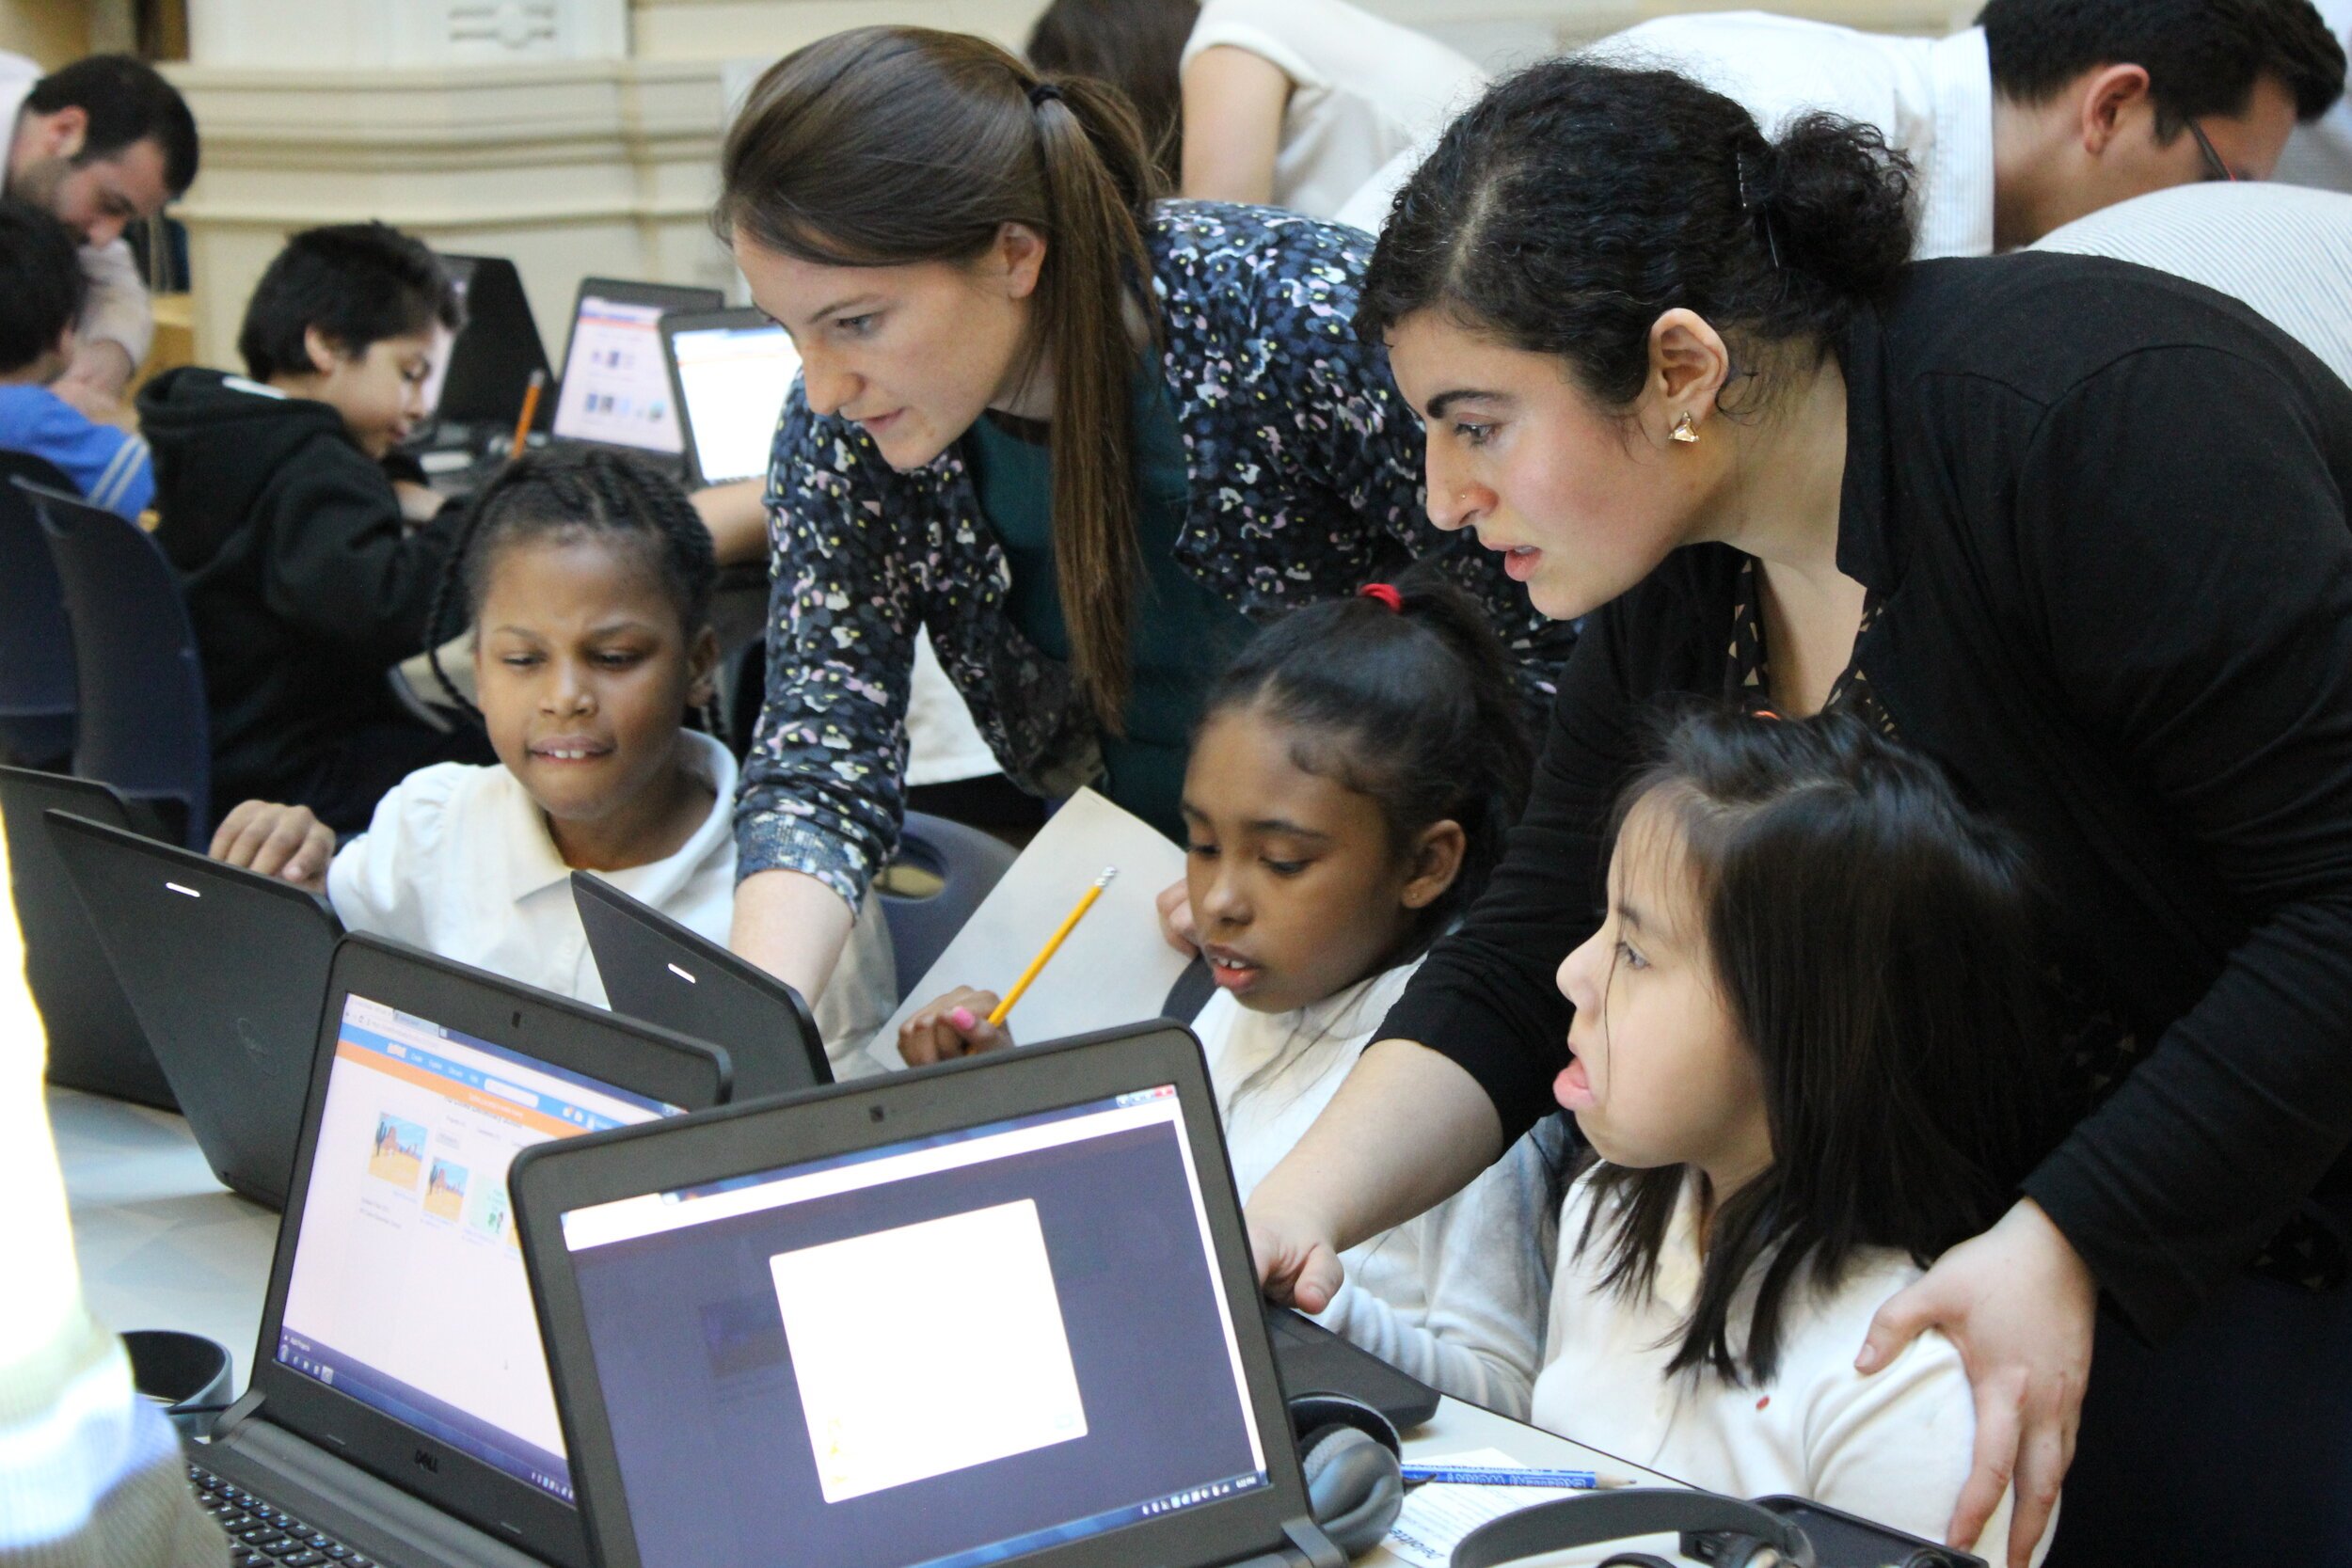 Flora Lerenman, a DC educator and America Achieves Fellow, works with her students.